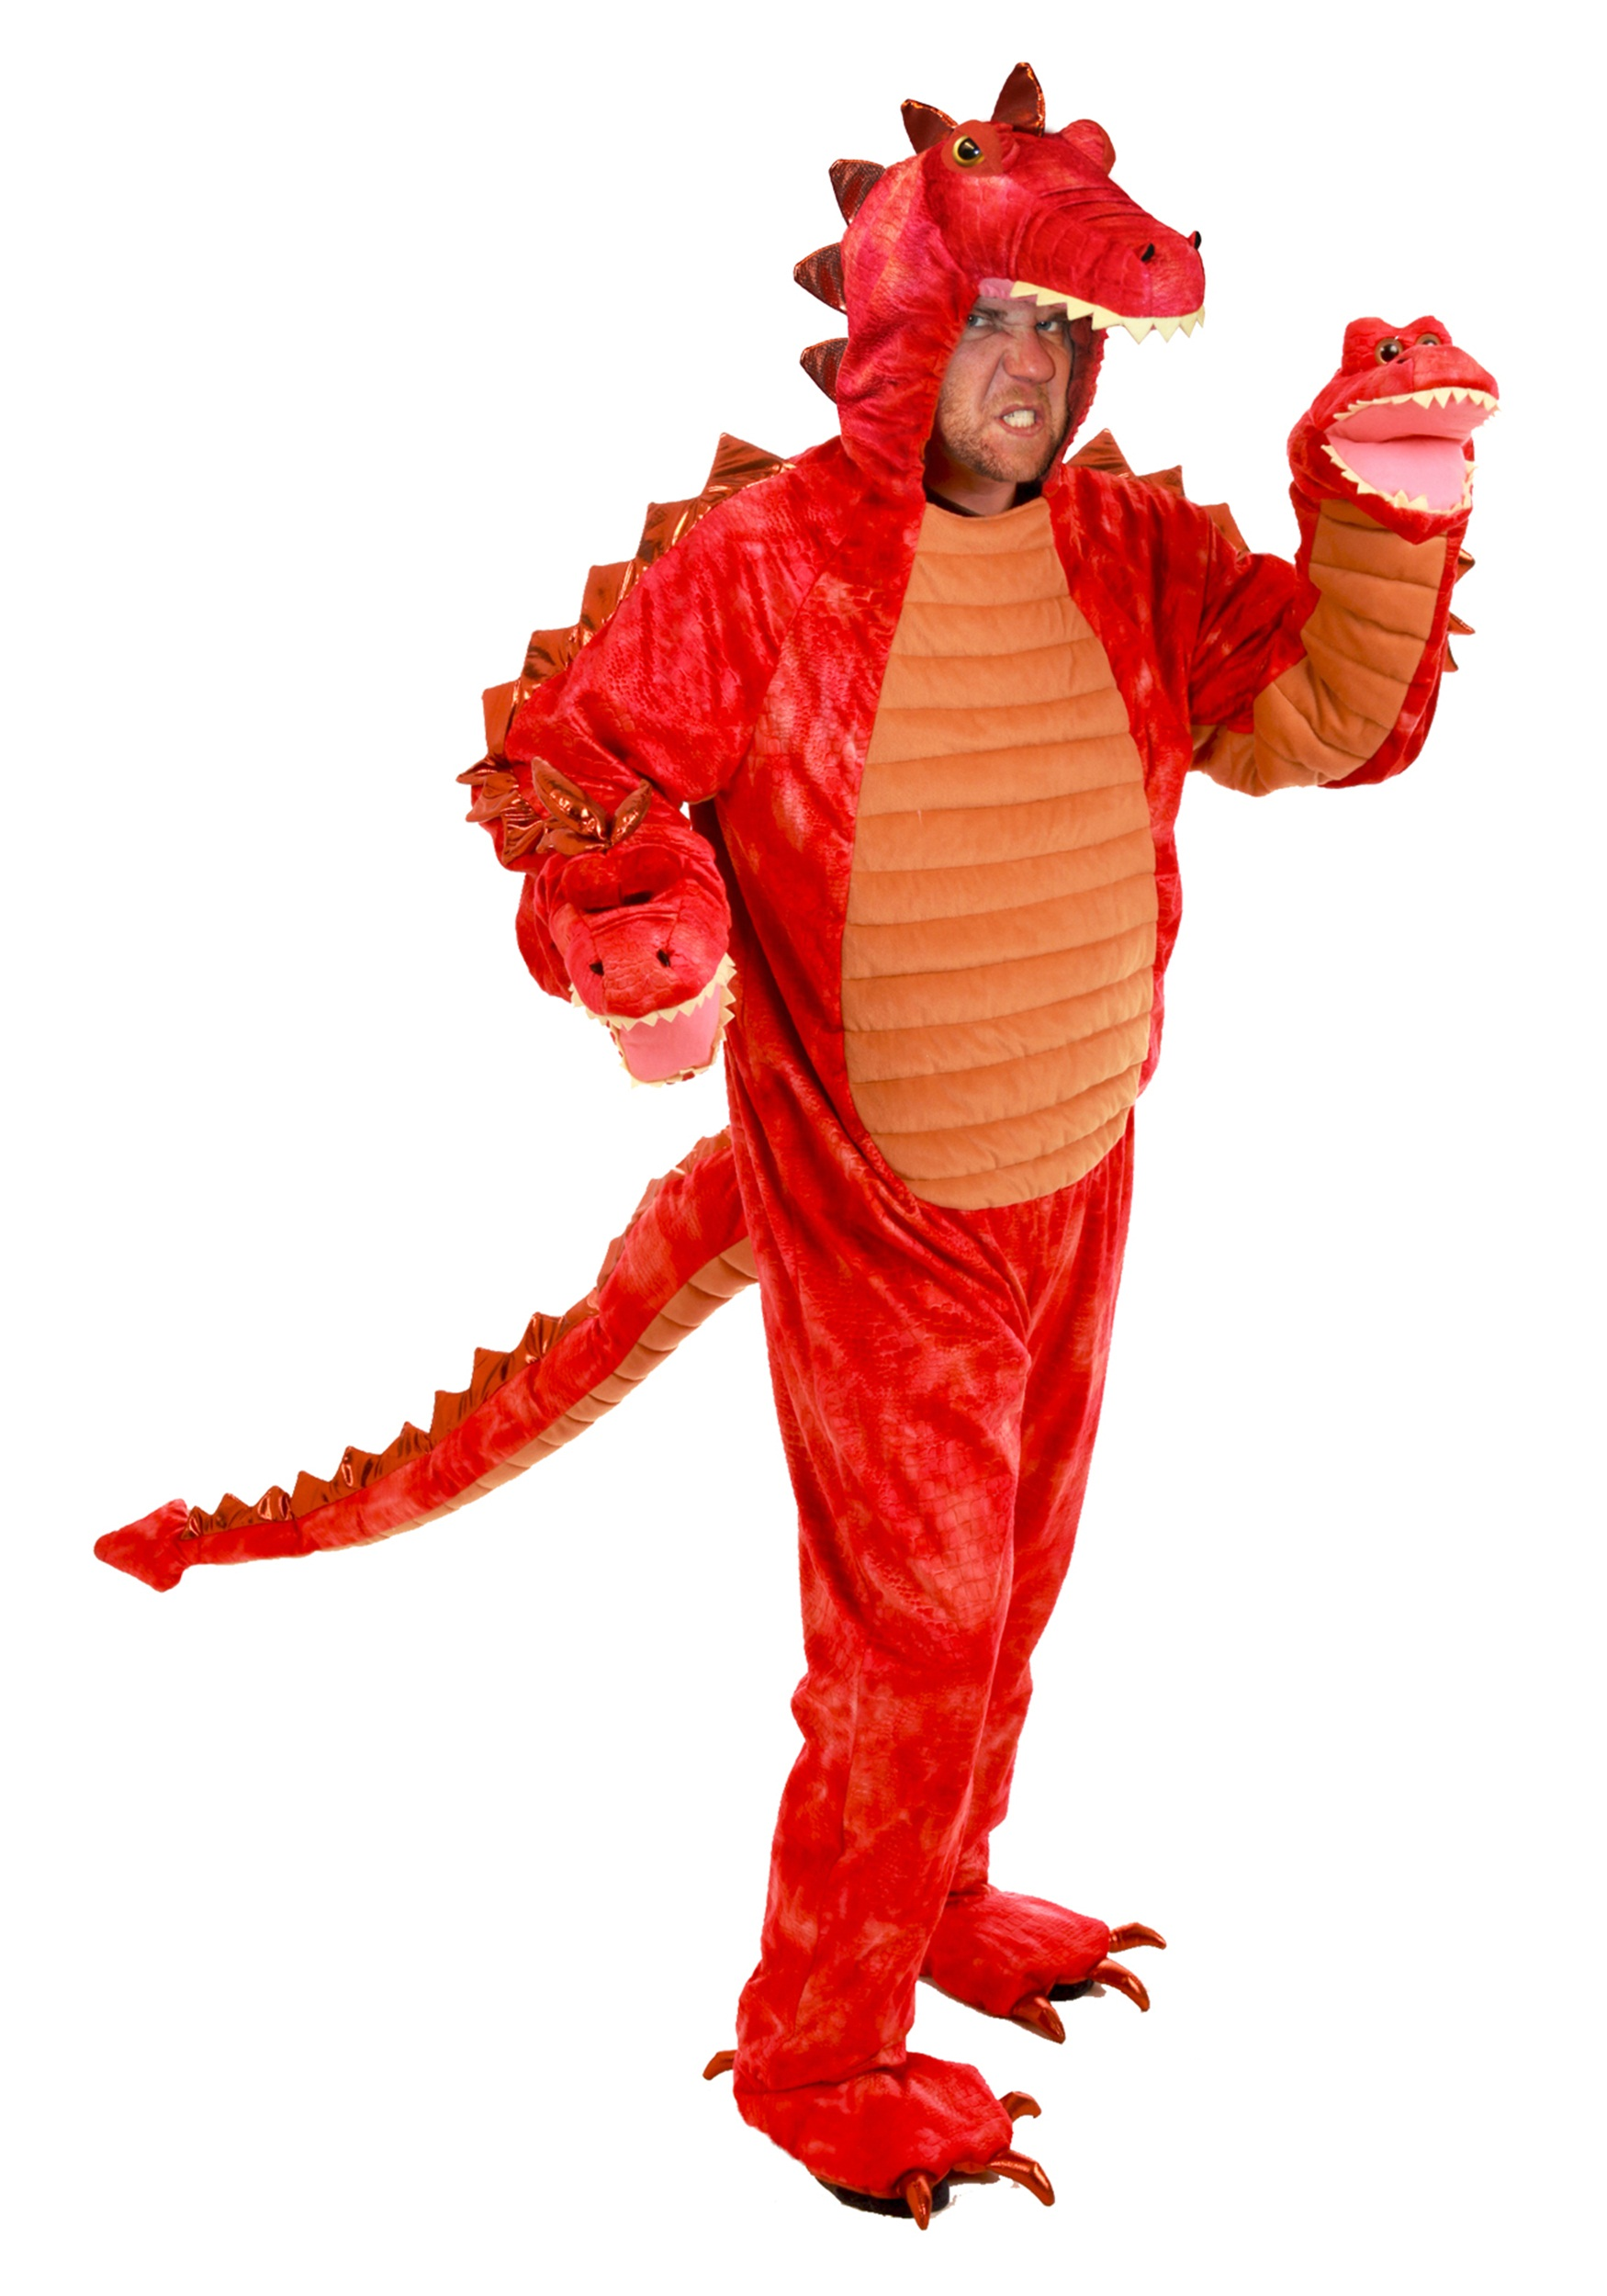 Dragon costumes for adults erotic amatuer models